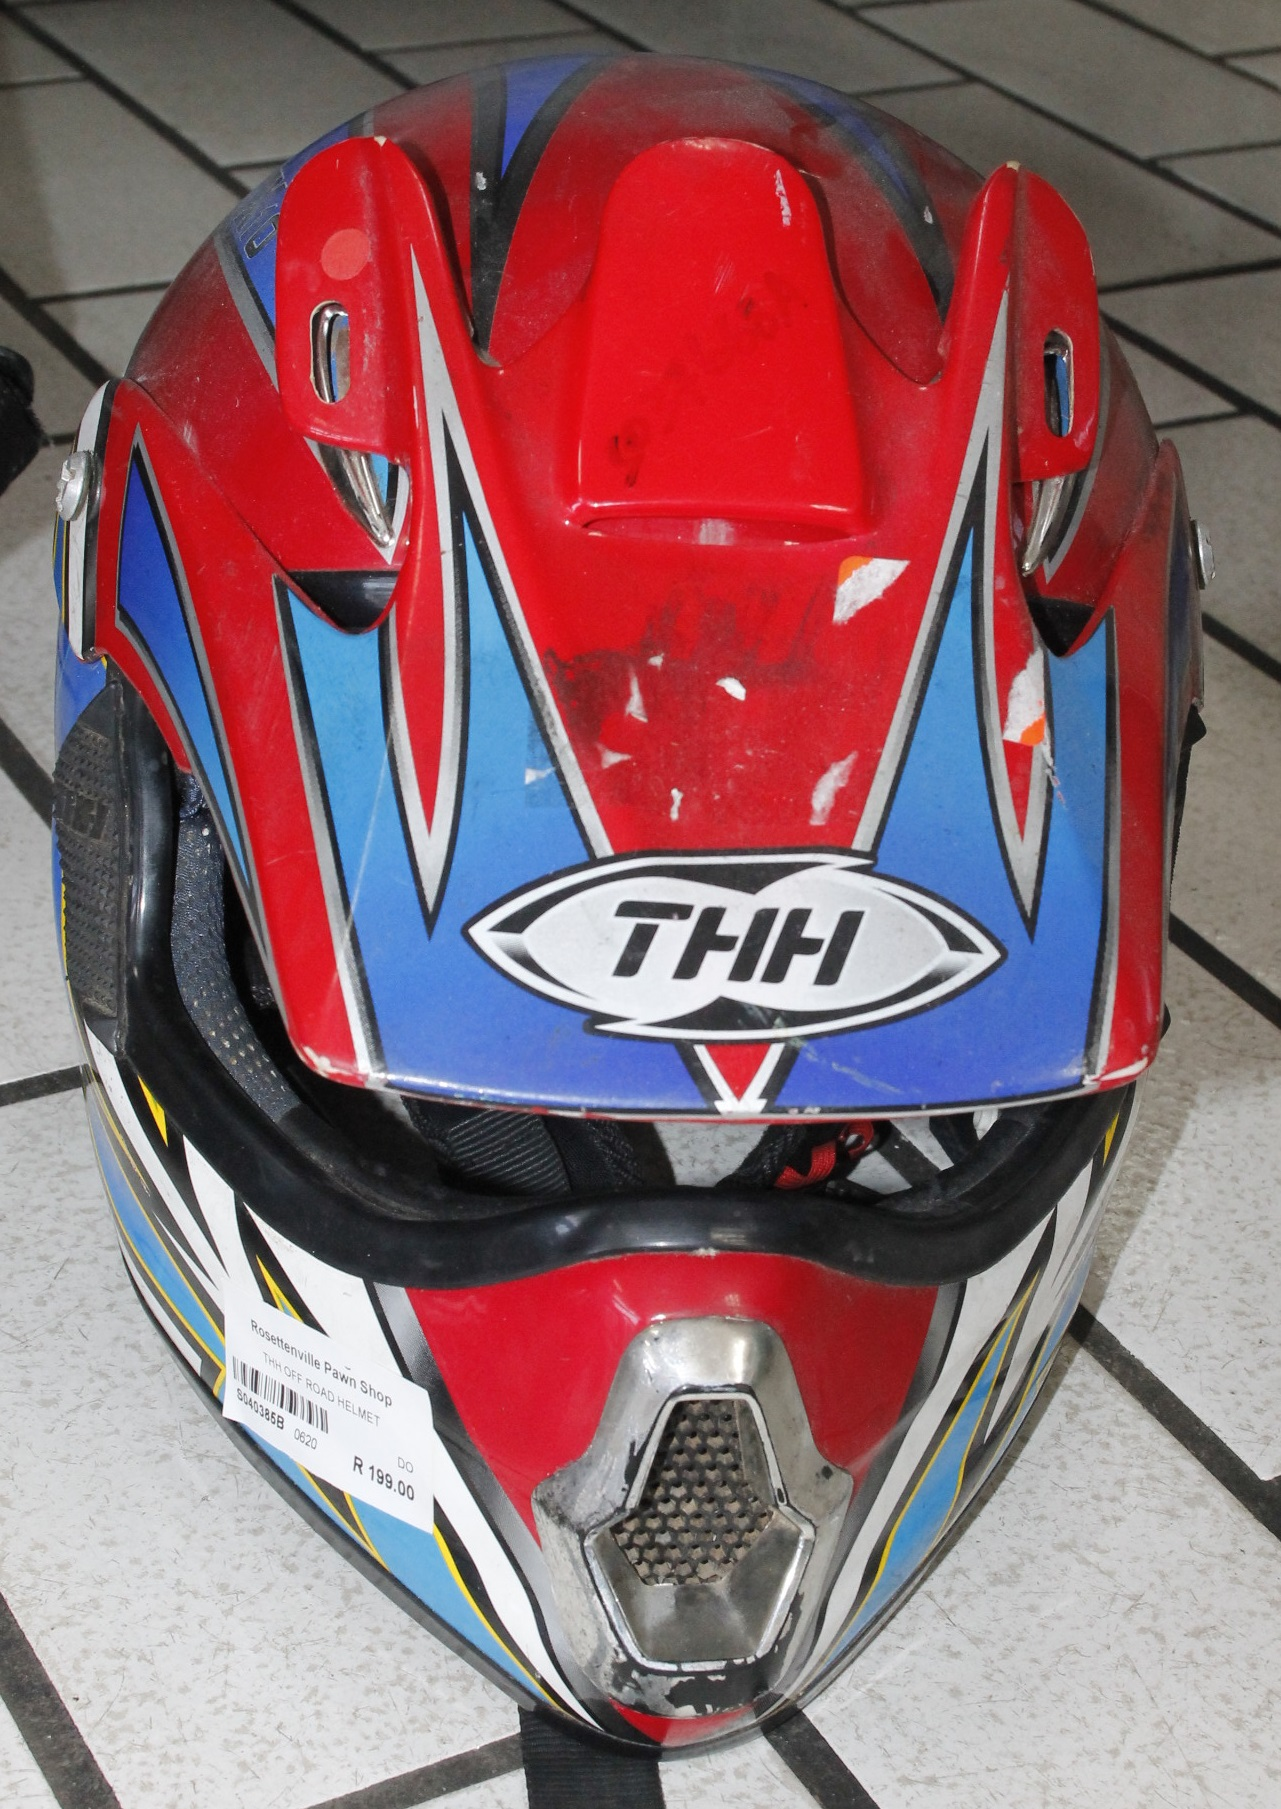 Thh off road helmet S040385B #Rosettenvillepawnshop